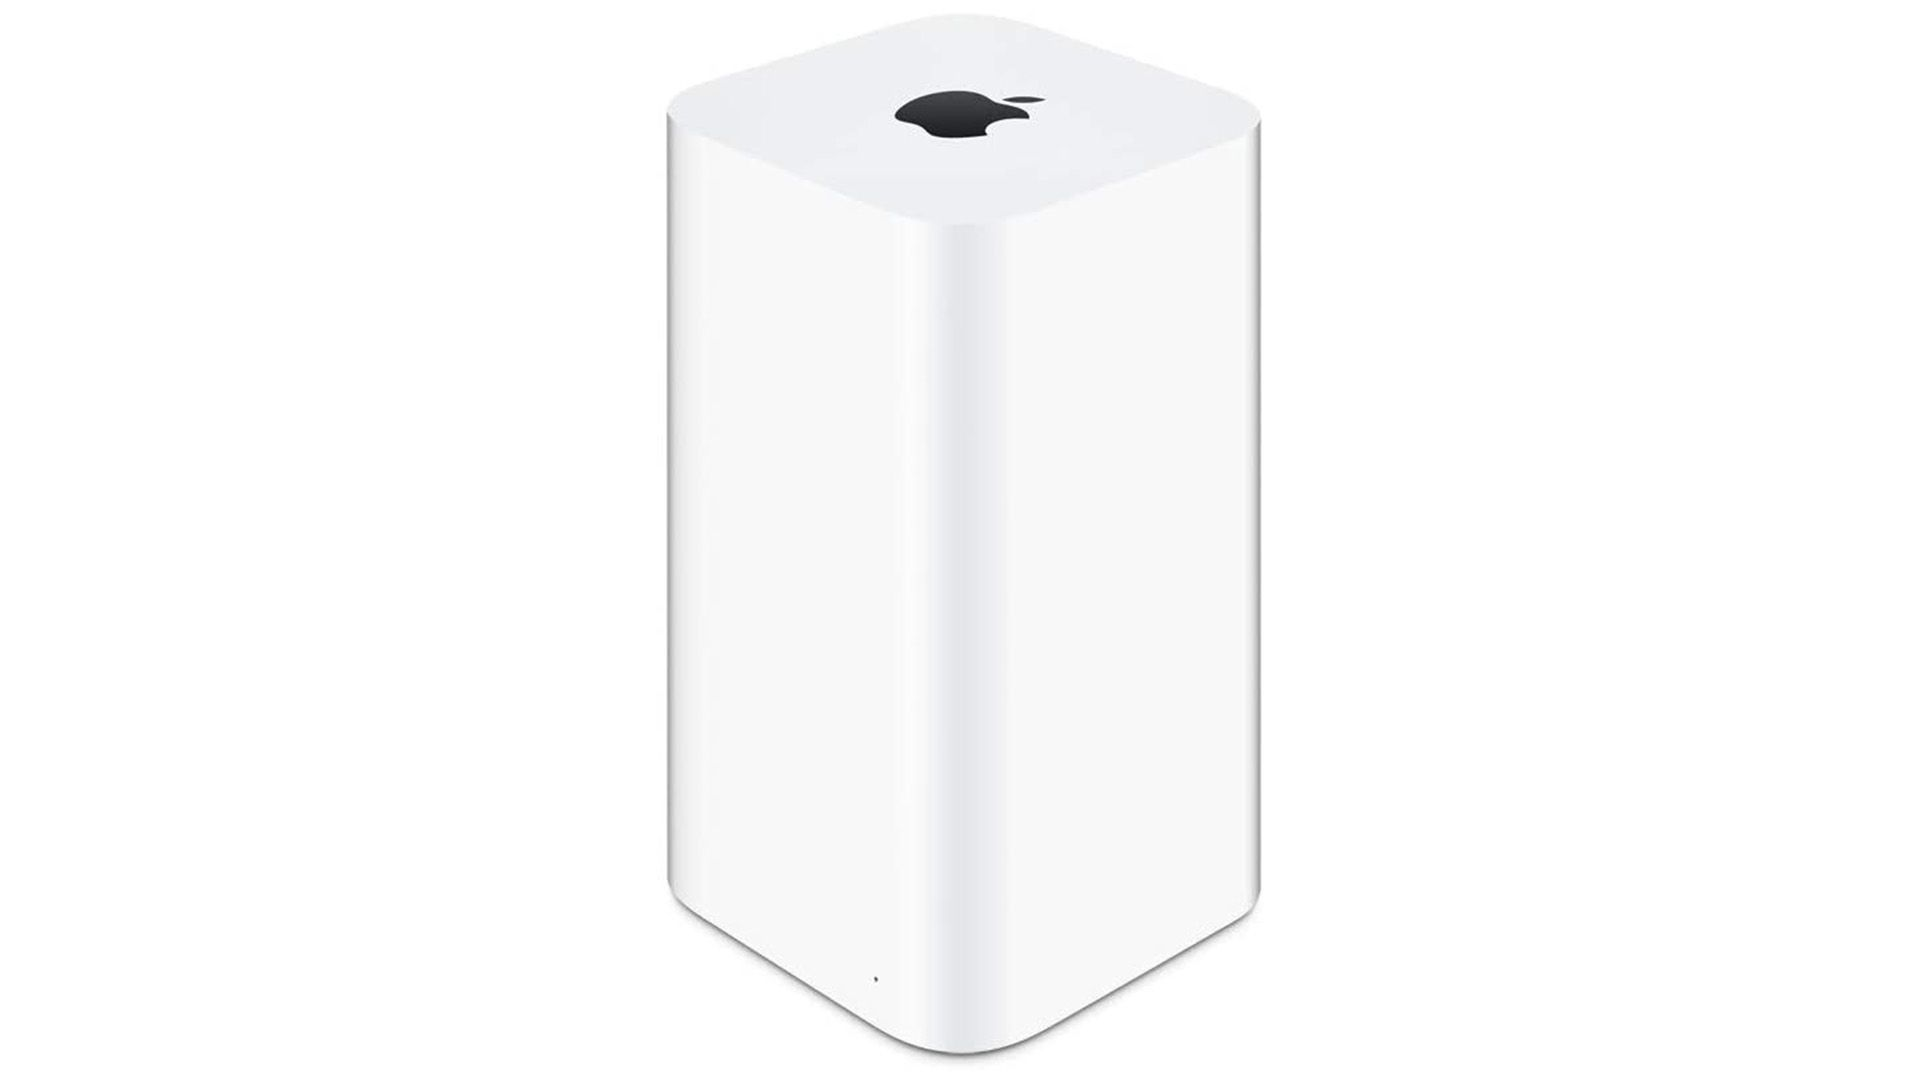 Apple AirPort Time Capsule router